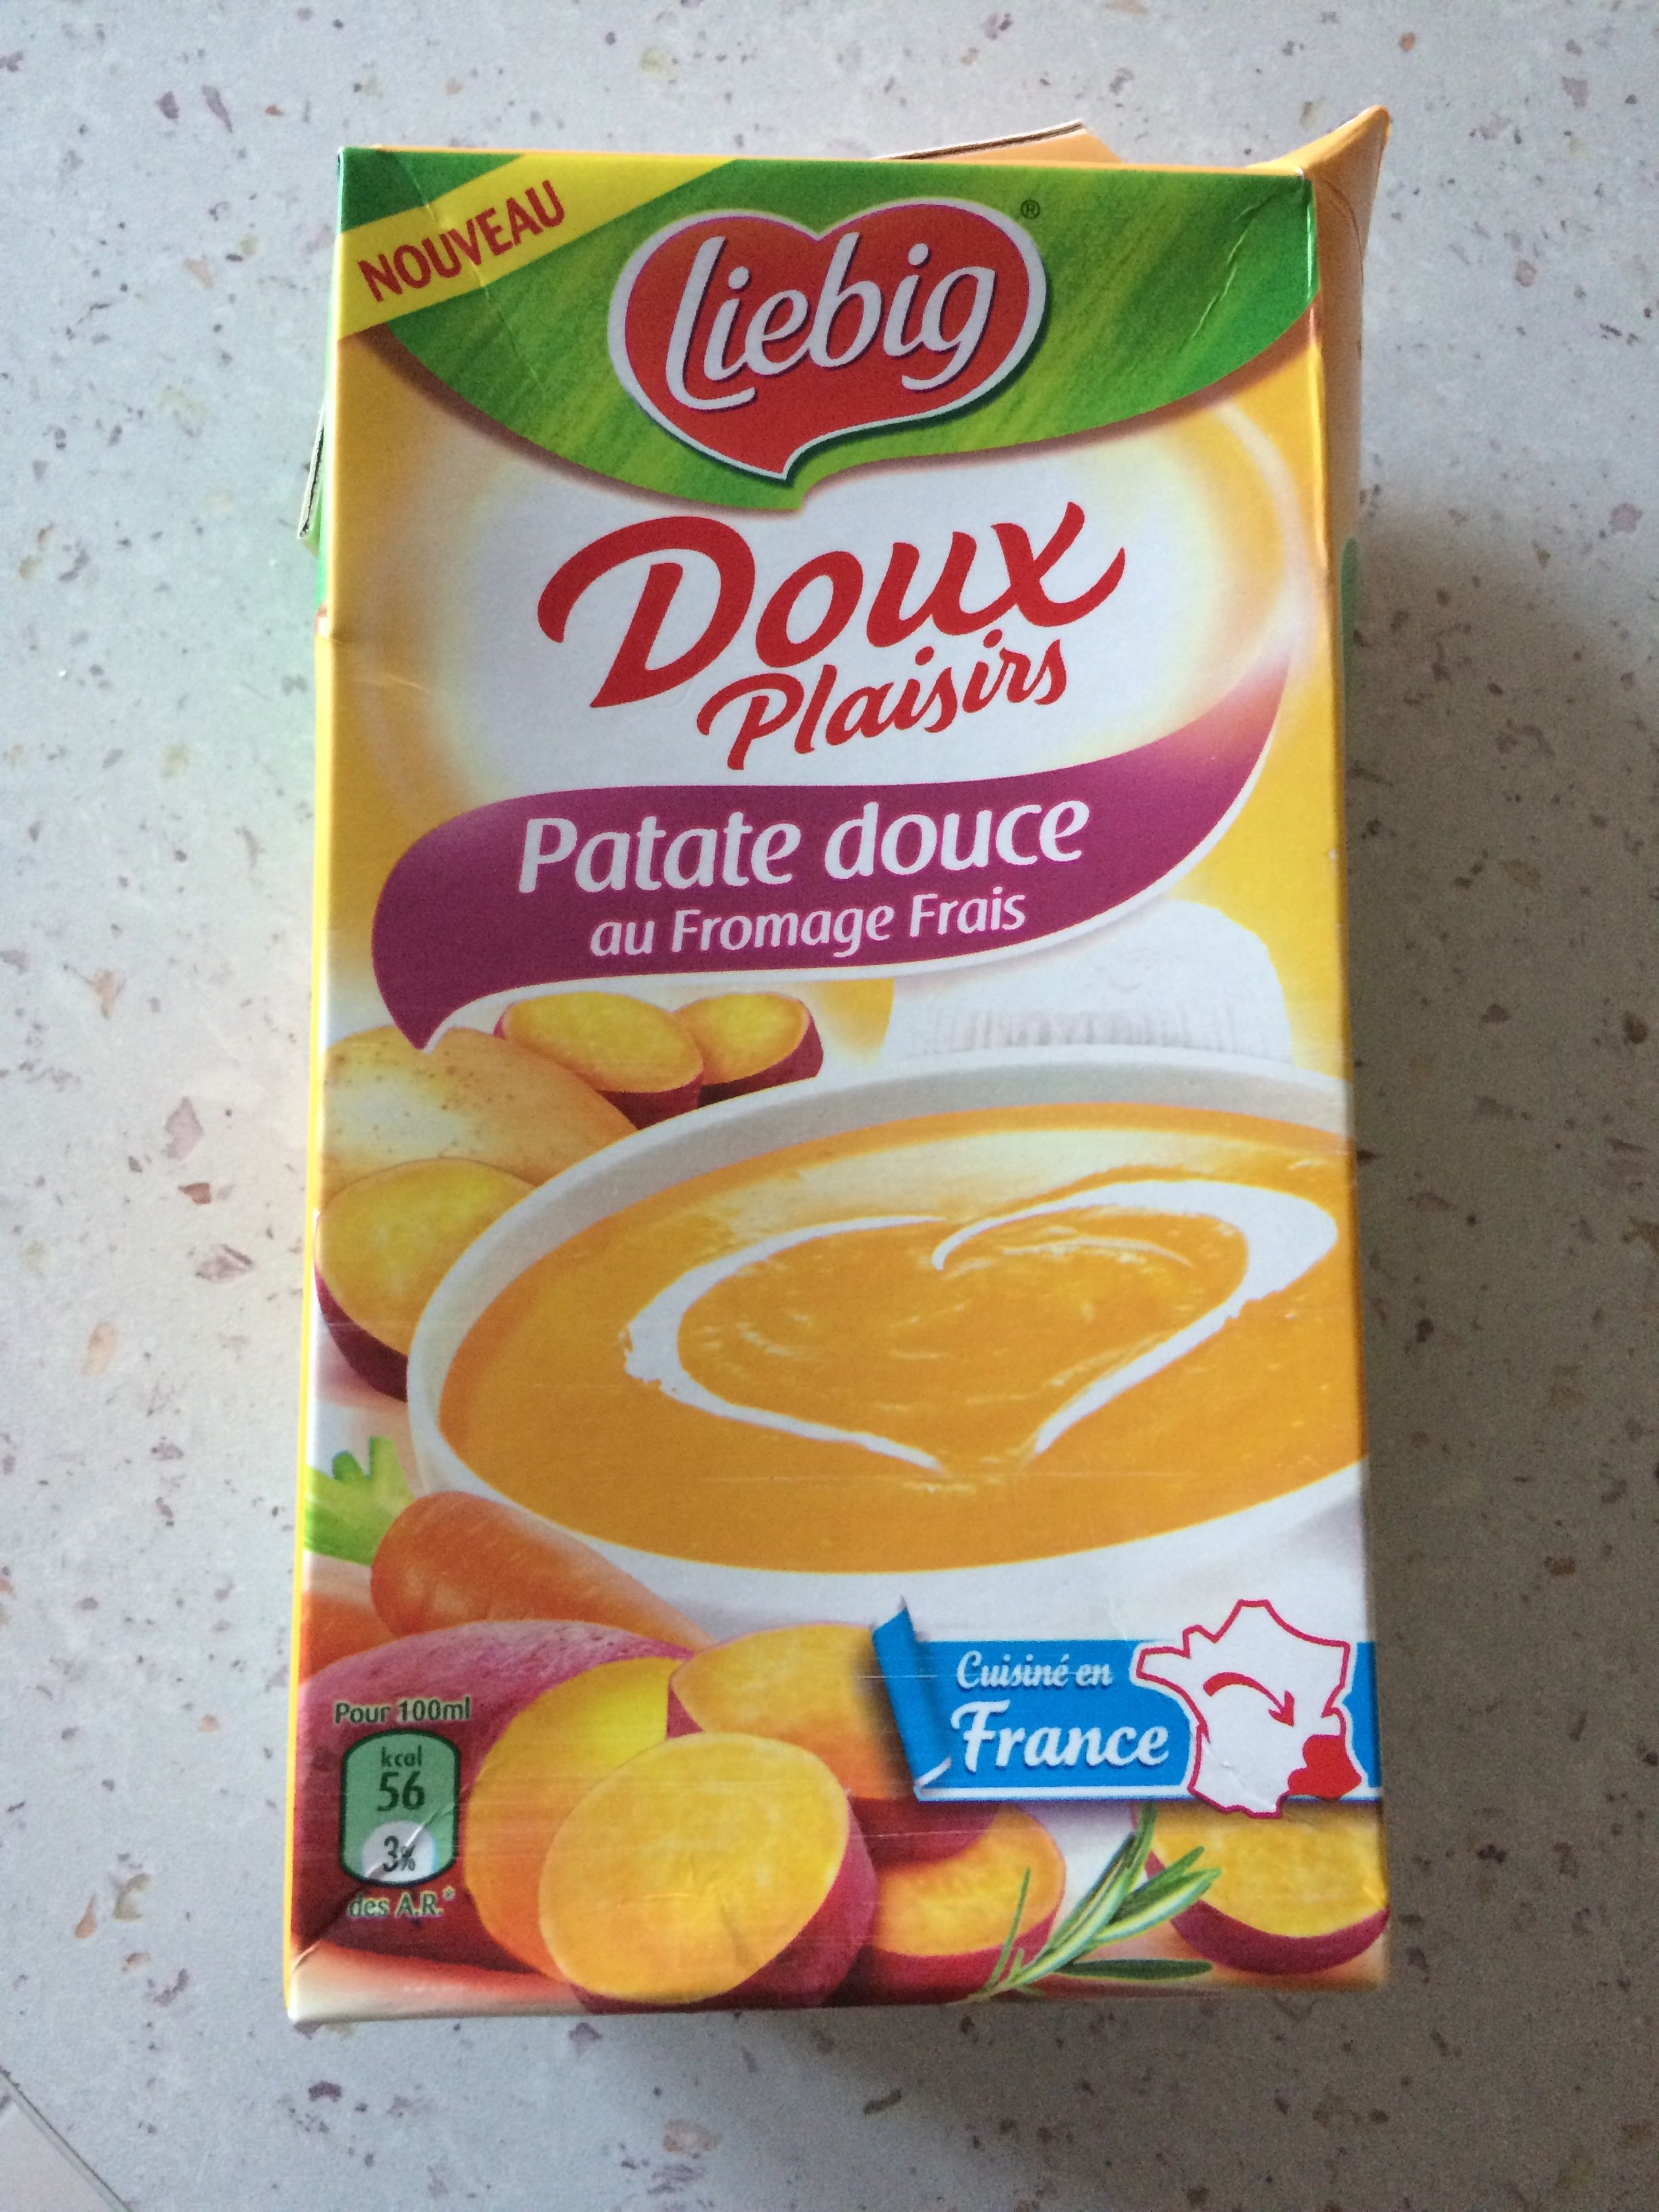 Patate douce au fromage frais - Product